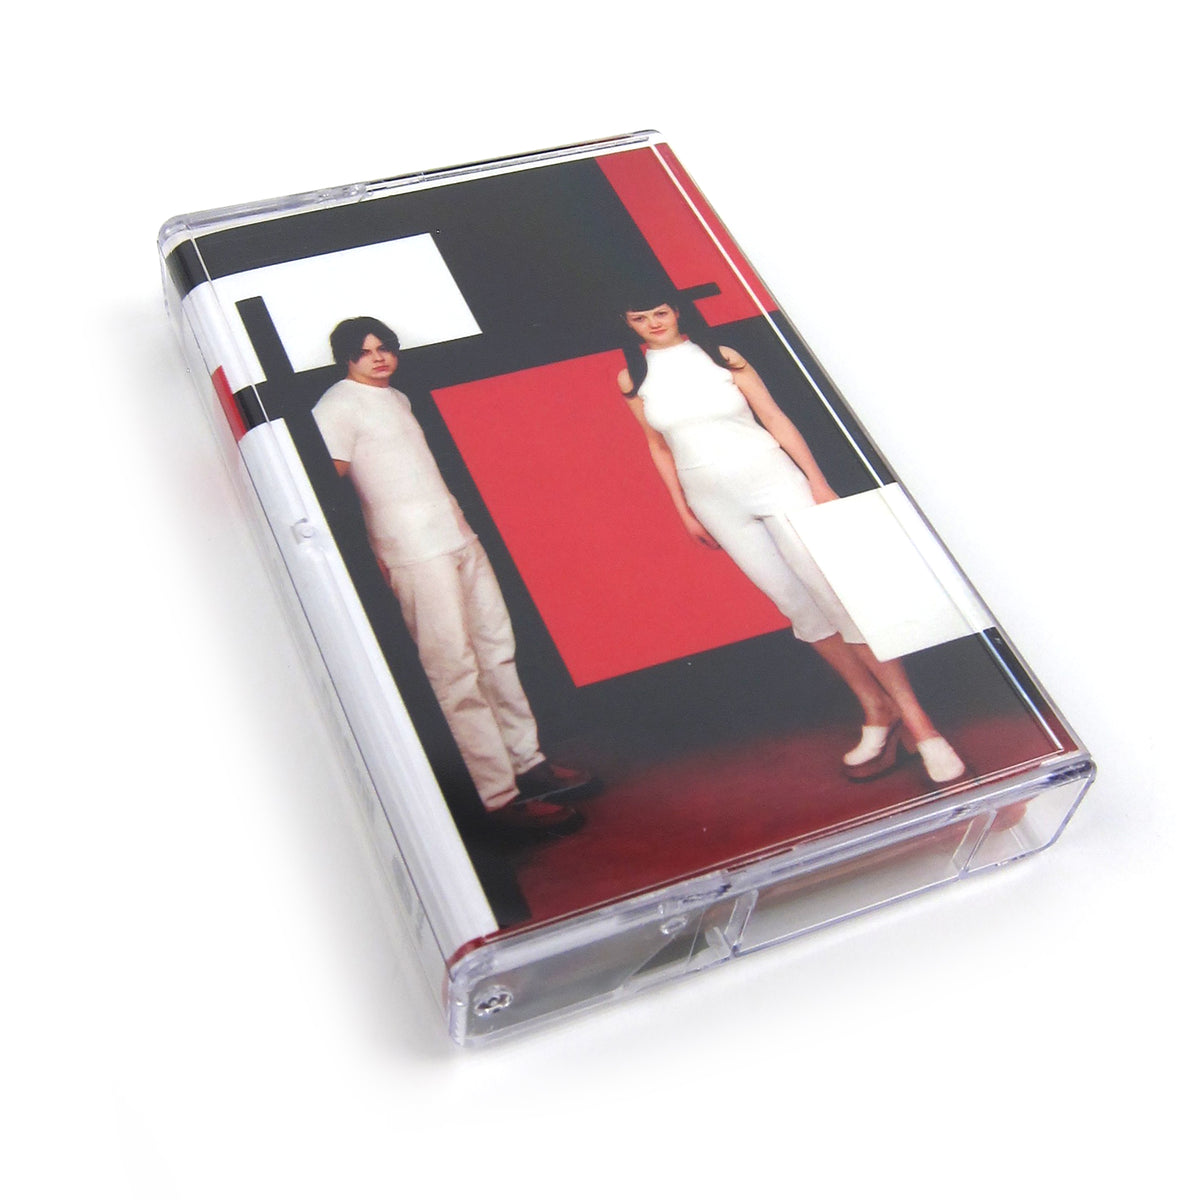 The White Stripes: Cassette Pack (The White Stripes, De Stijl, White Blood Cells)